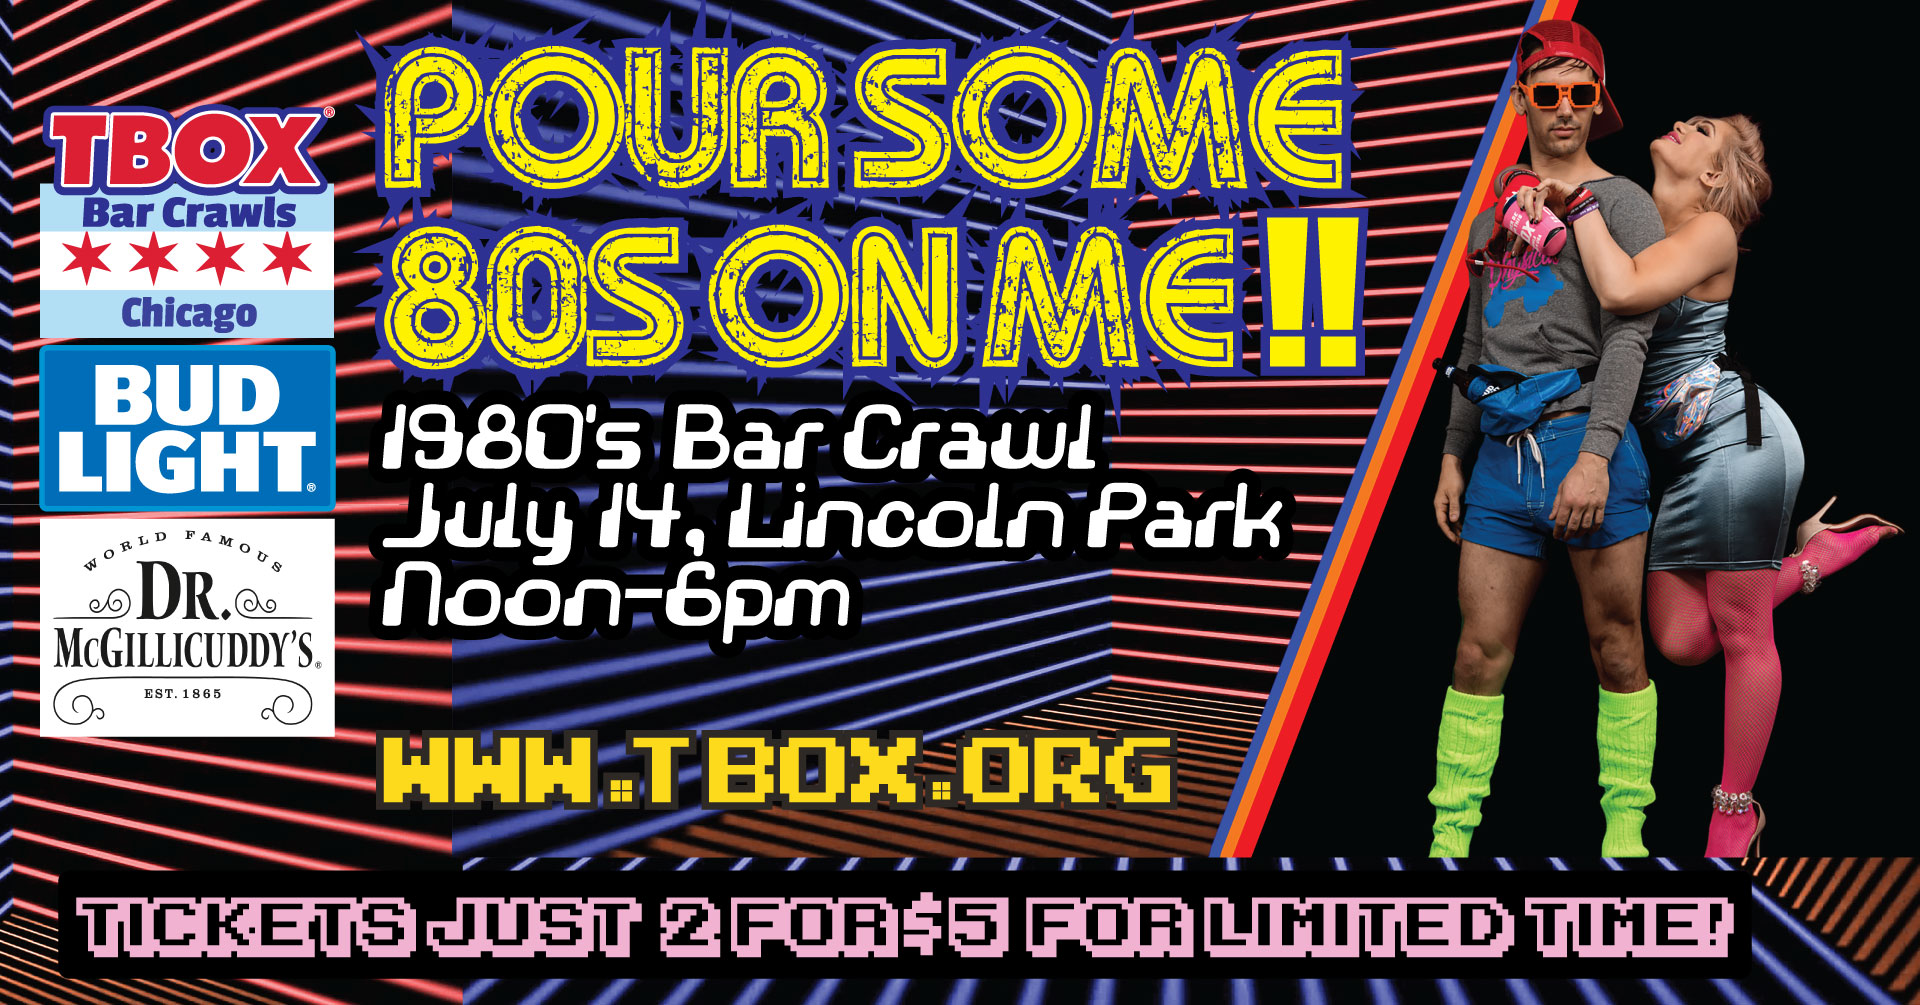 Pour Some 80s on Me - 1980s Bar Crawl - Chicago Bar Crawl - Chicago Pub Crawl